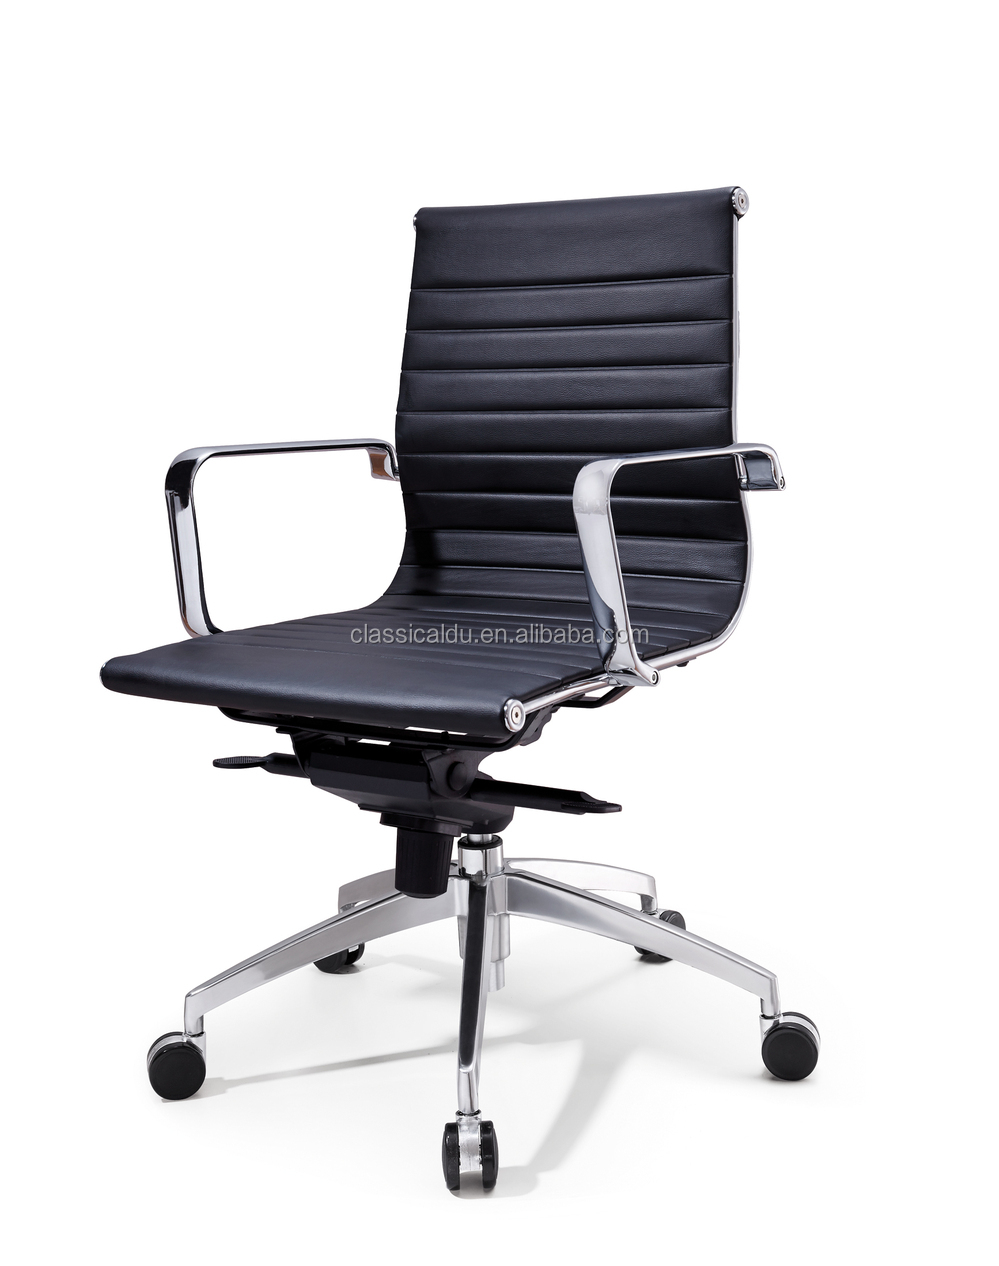 cheap ribbed chair conference chair leather office chair du 345m buy